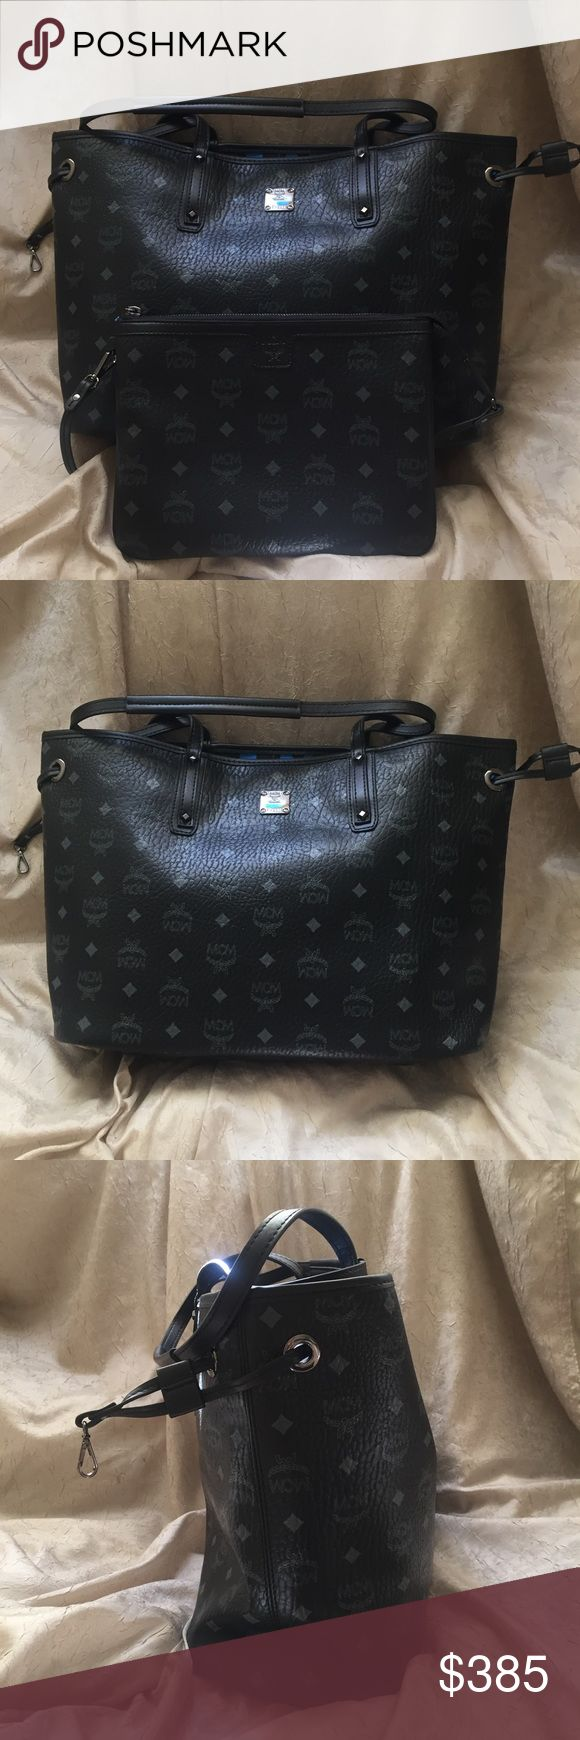 mcm handbag tote purse in black authentic guaranteed mcm reversible tote. never used. sorry no trades. inappropriate comments will be ignored and/or reported. MCM Bags Totes